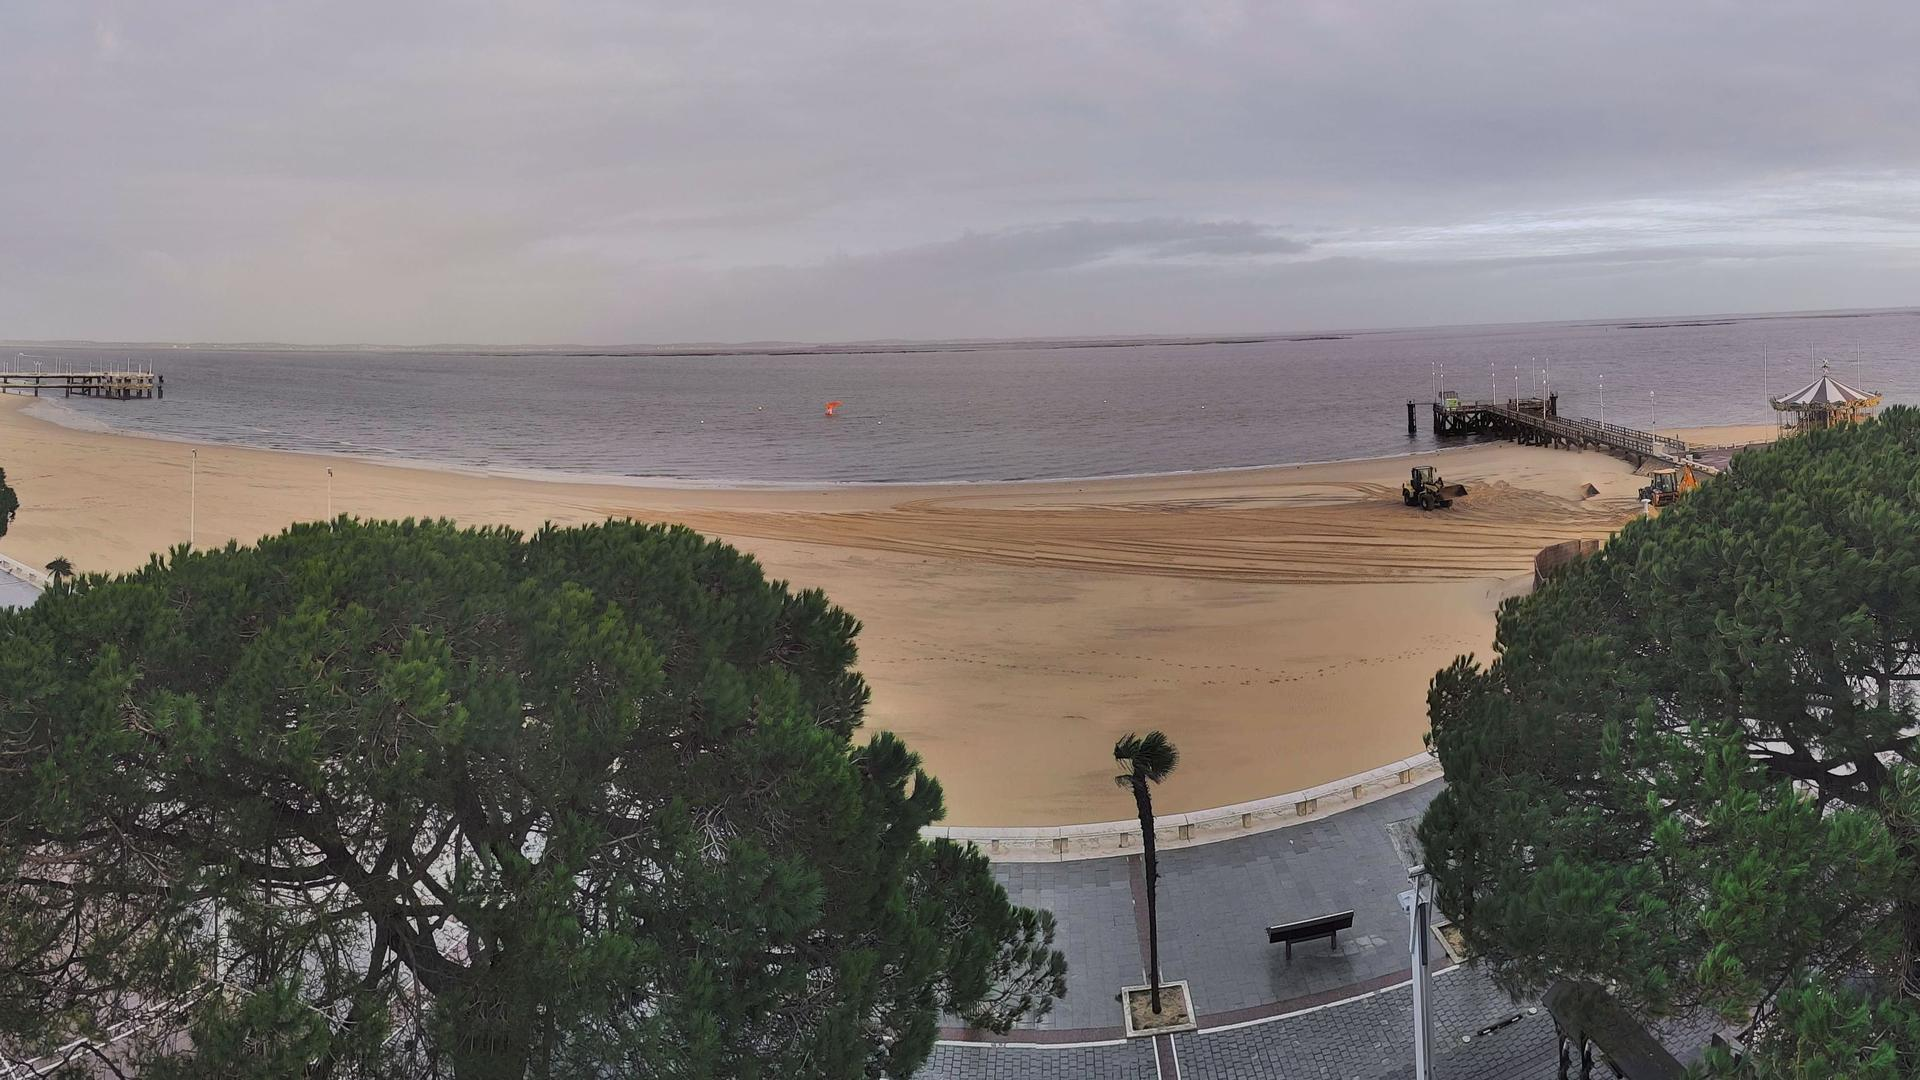 Webkamera Arcachon: Panoramique HD